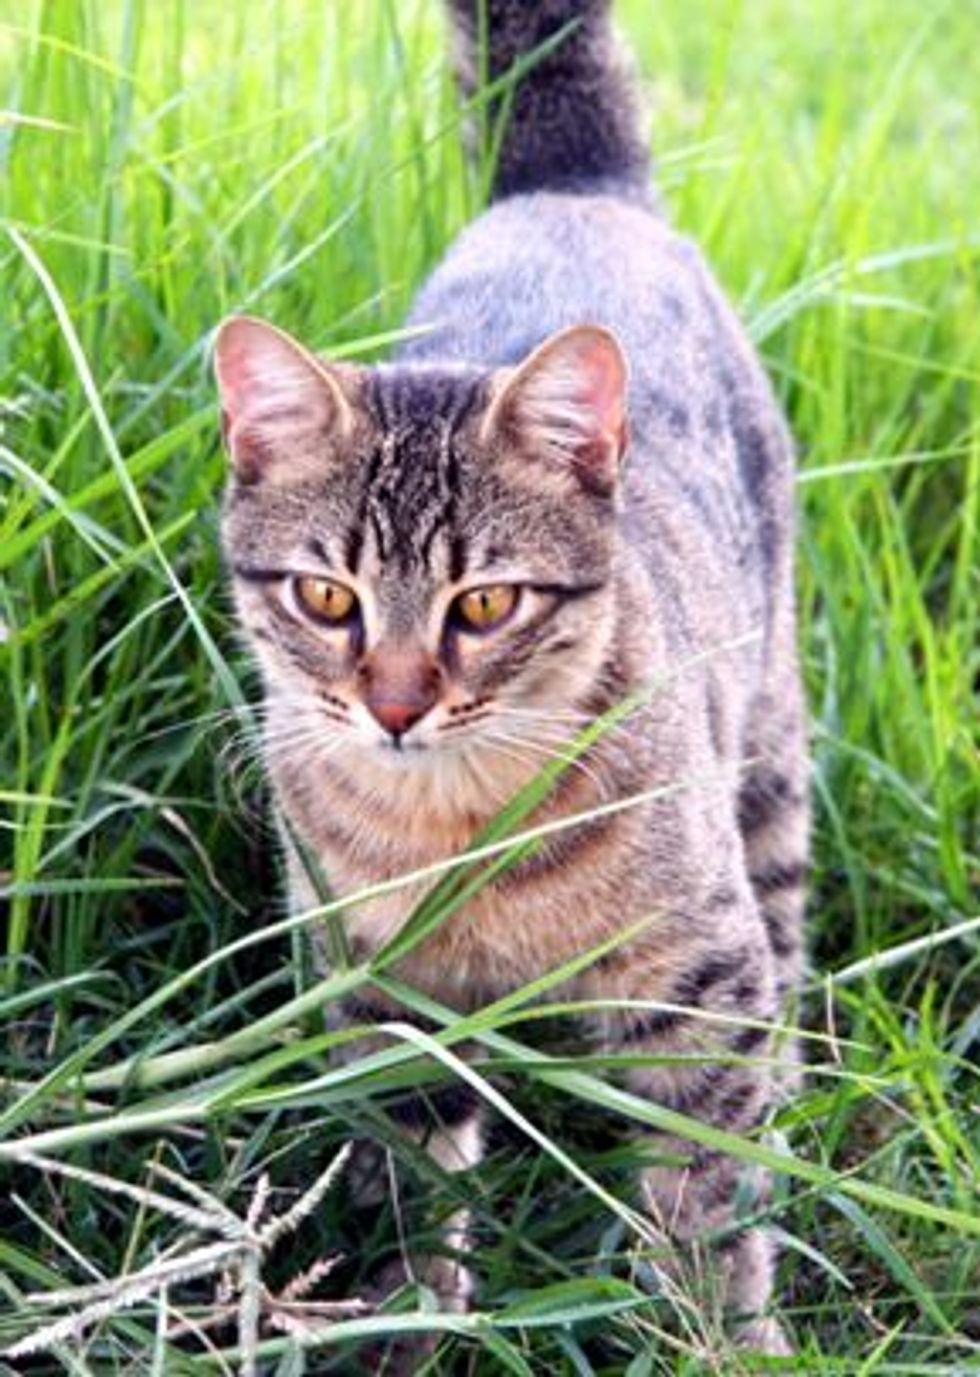 Cats Offensive or Defensive Behavior